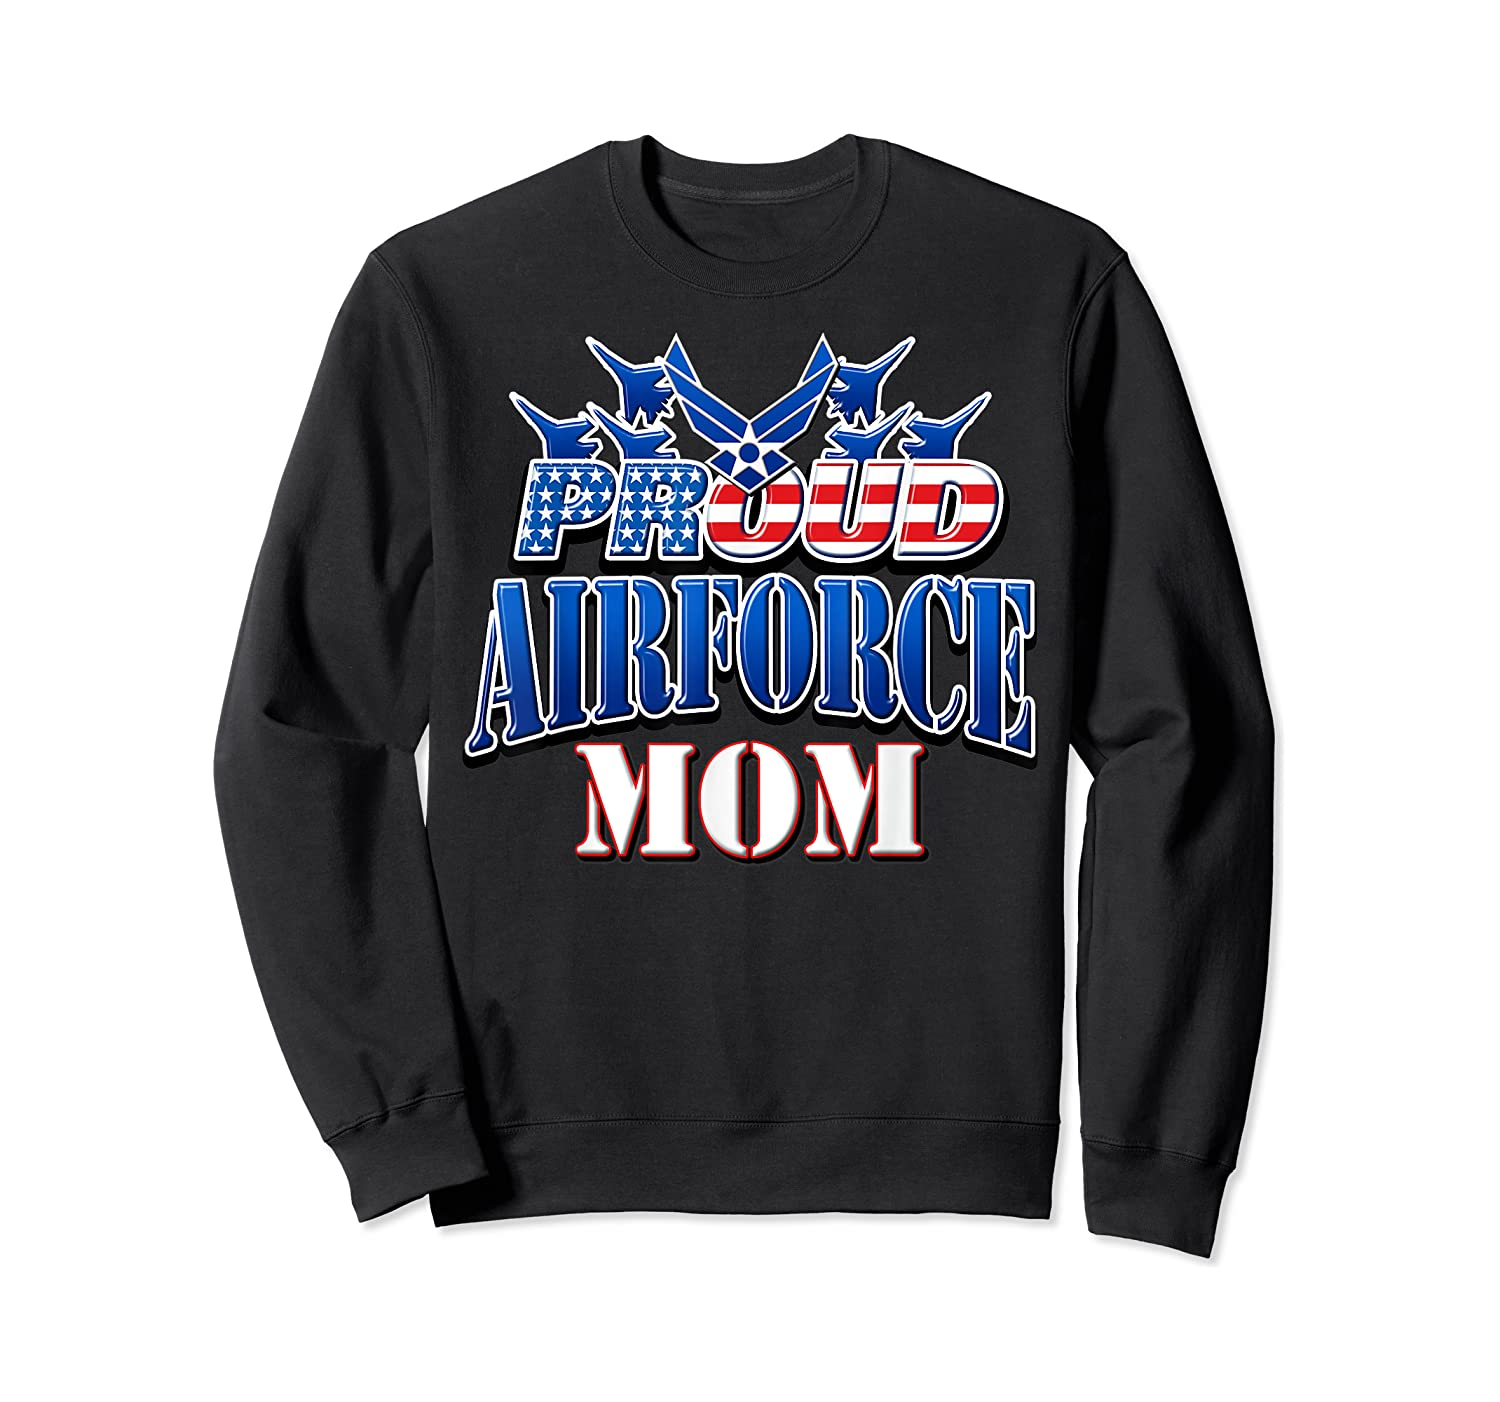 Proud Air Force Mom Shirt Mothers Day Patriotic Usa Military Crewneck Sweater